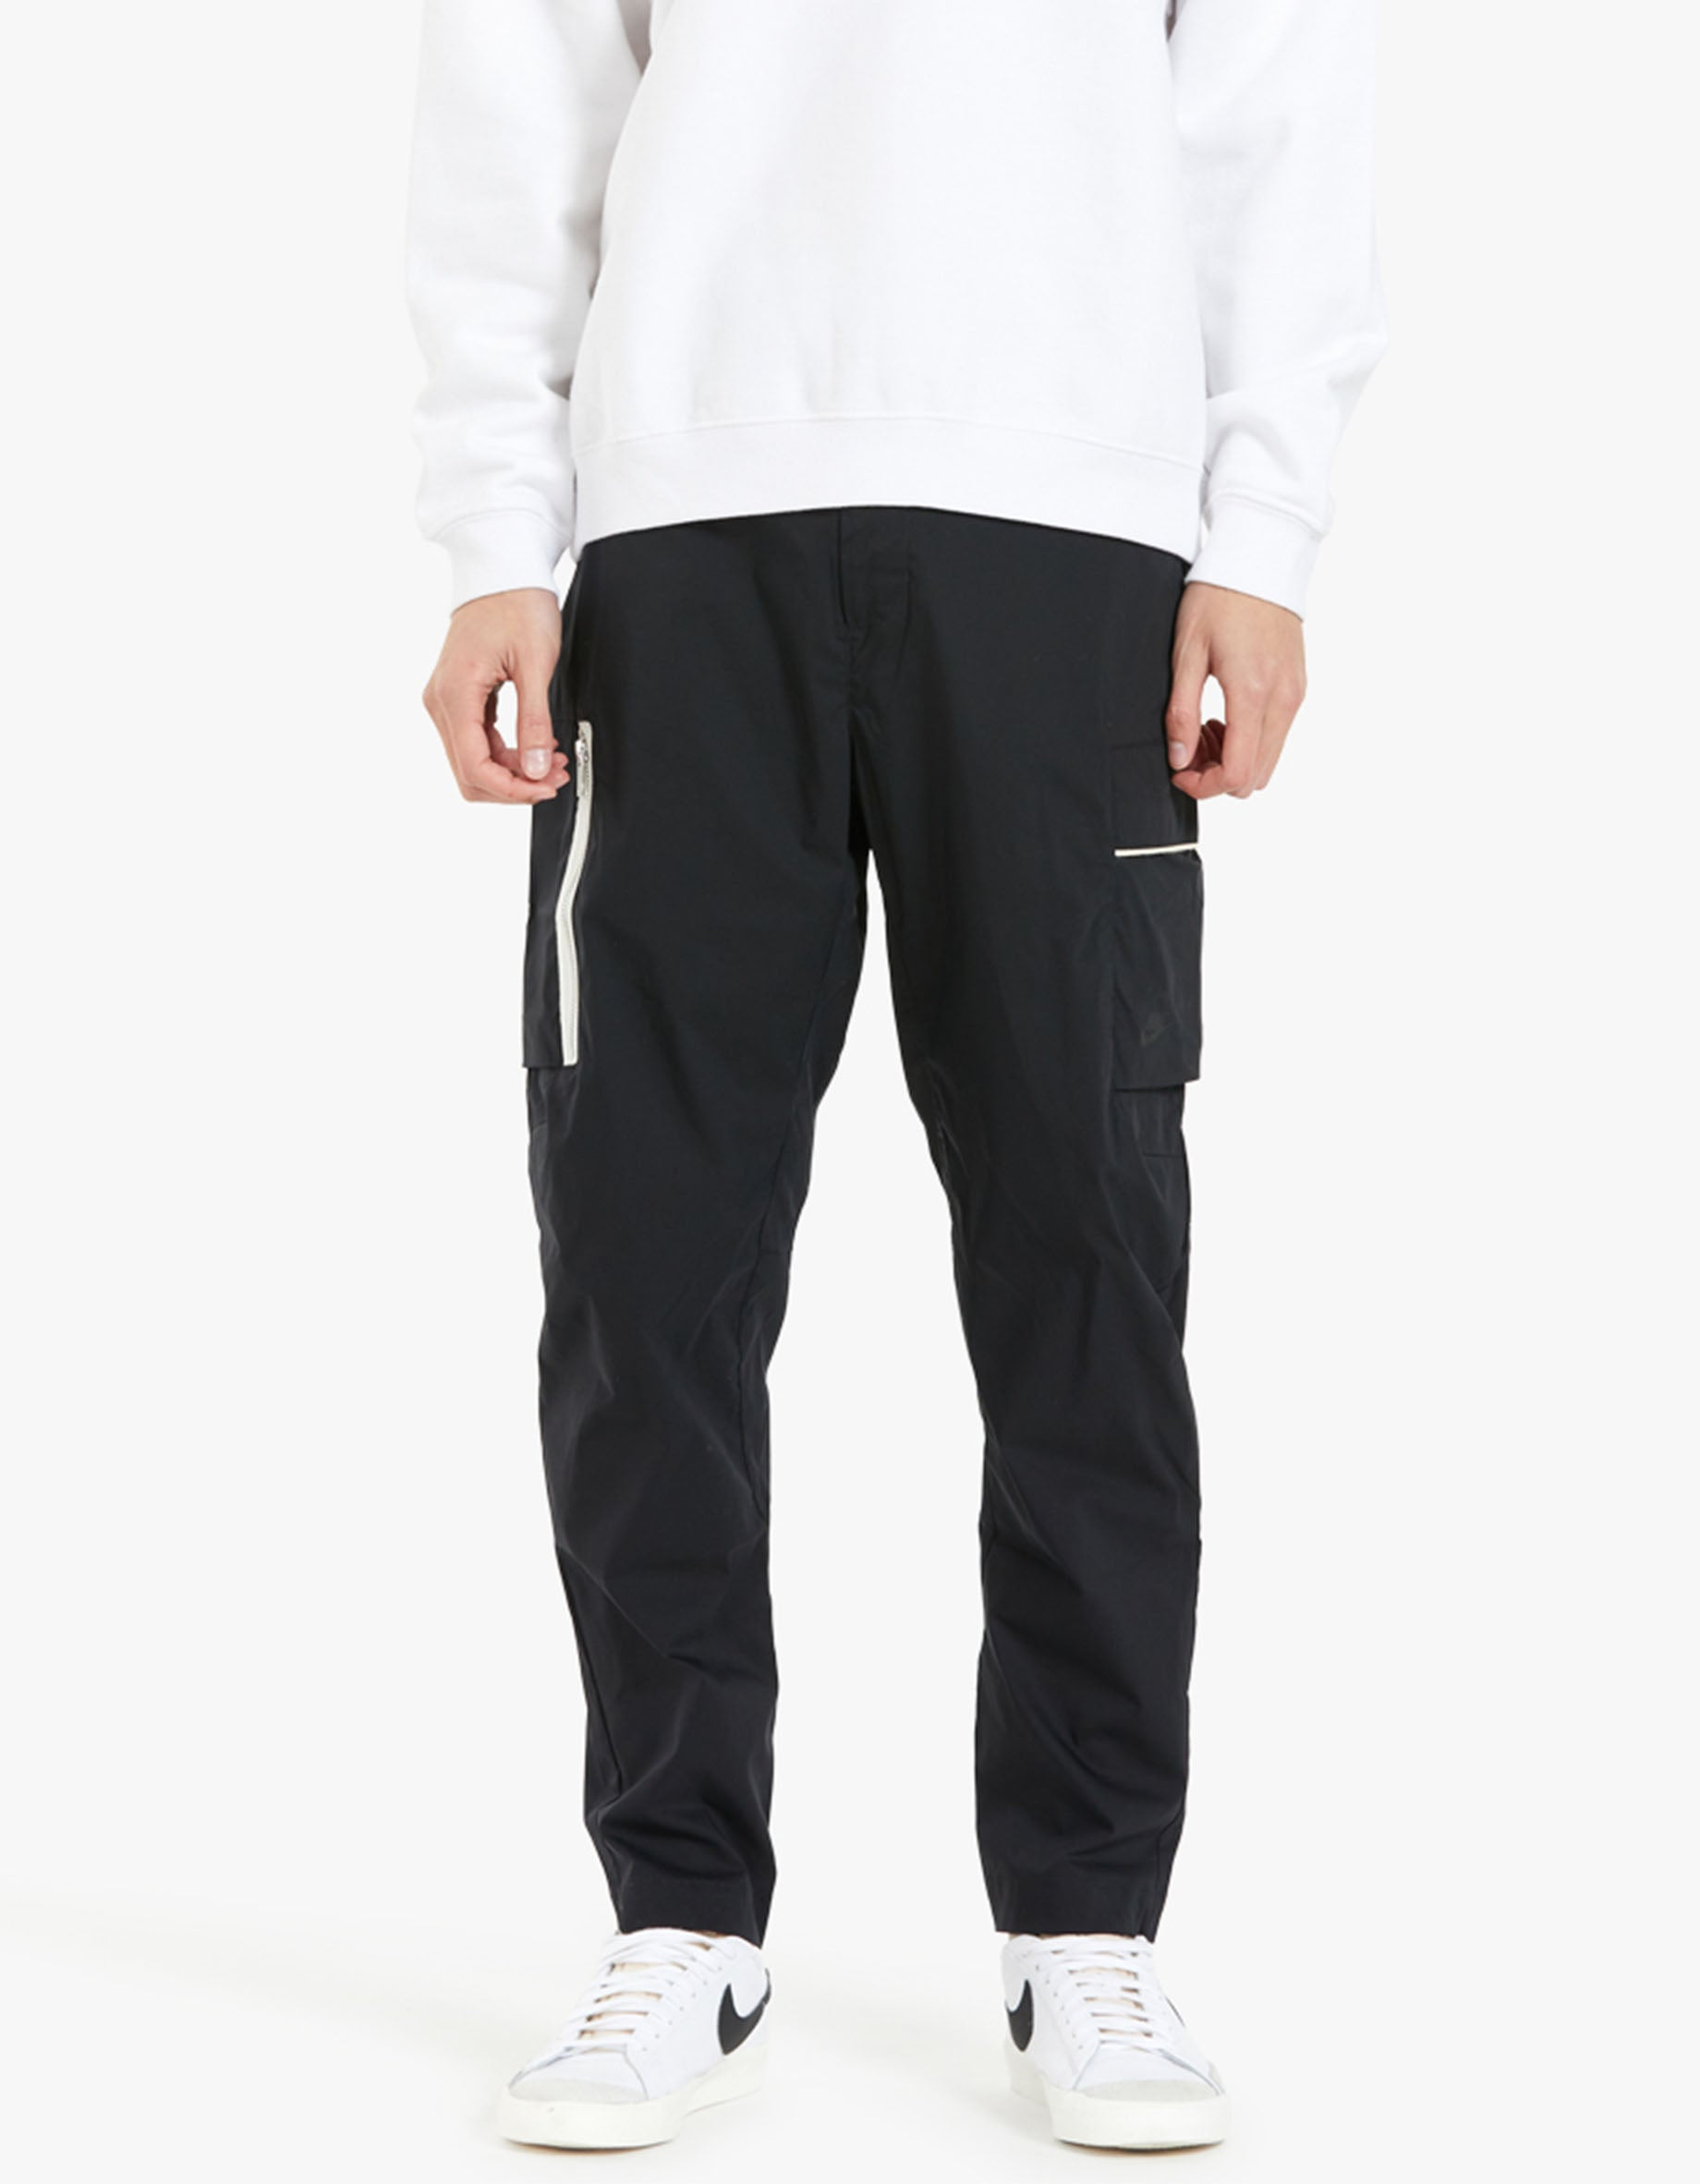 Mens Woven Unlined Utility Pants - Black/Sail/ice Silver/Black